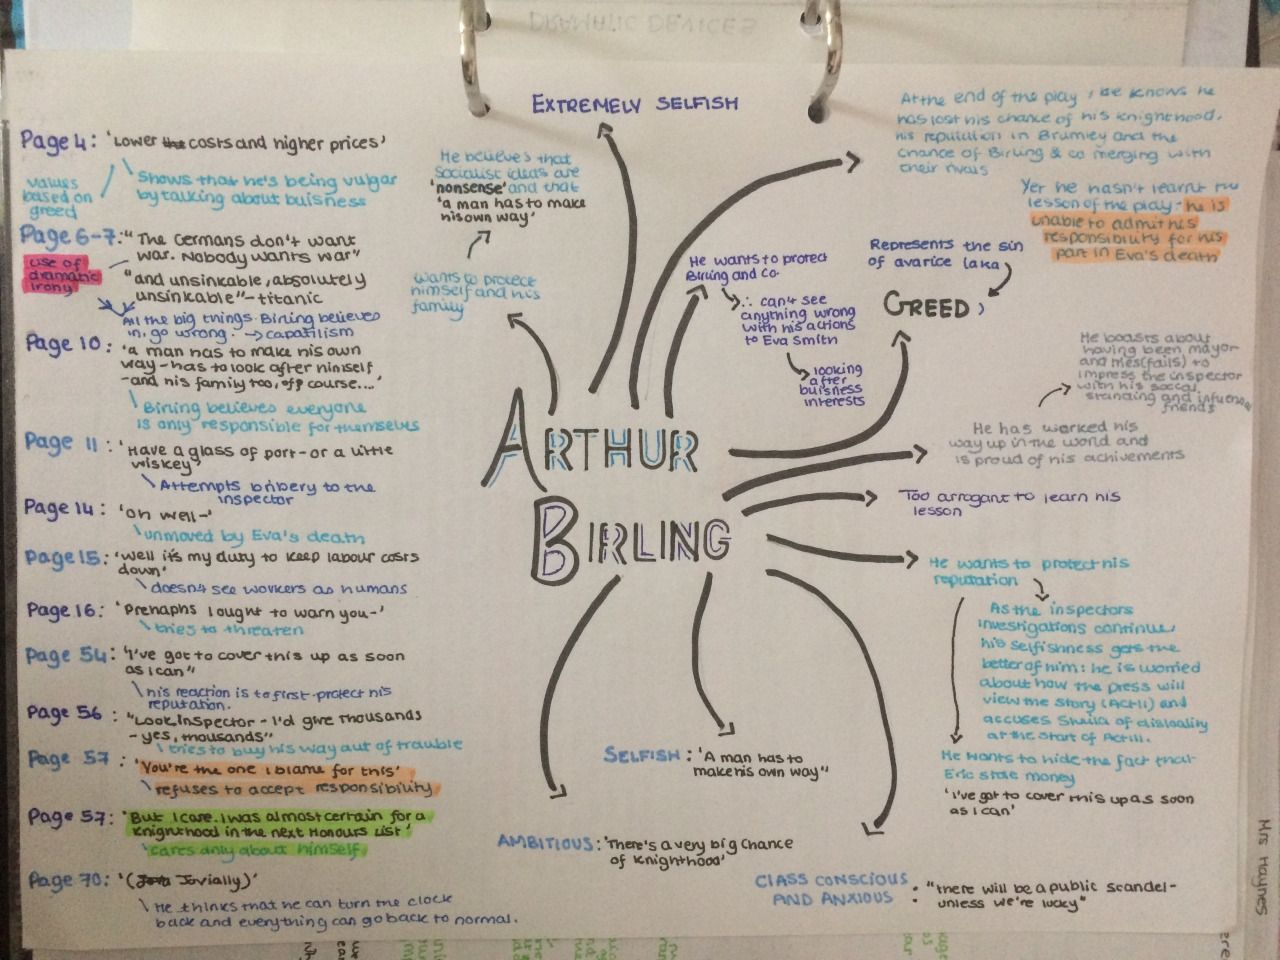 an inspector calls sheila birling Home gcse/igcse notes english literature sheila birling - an inspector calls sheila's character development/changes sheila birling's key quotes bank.